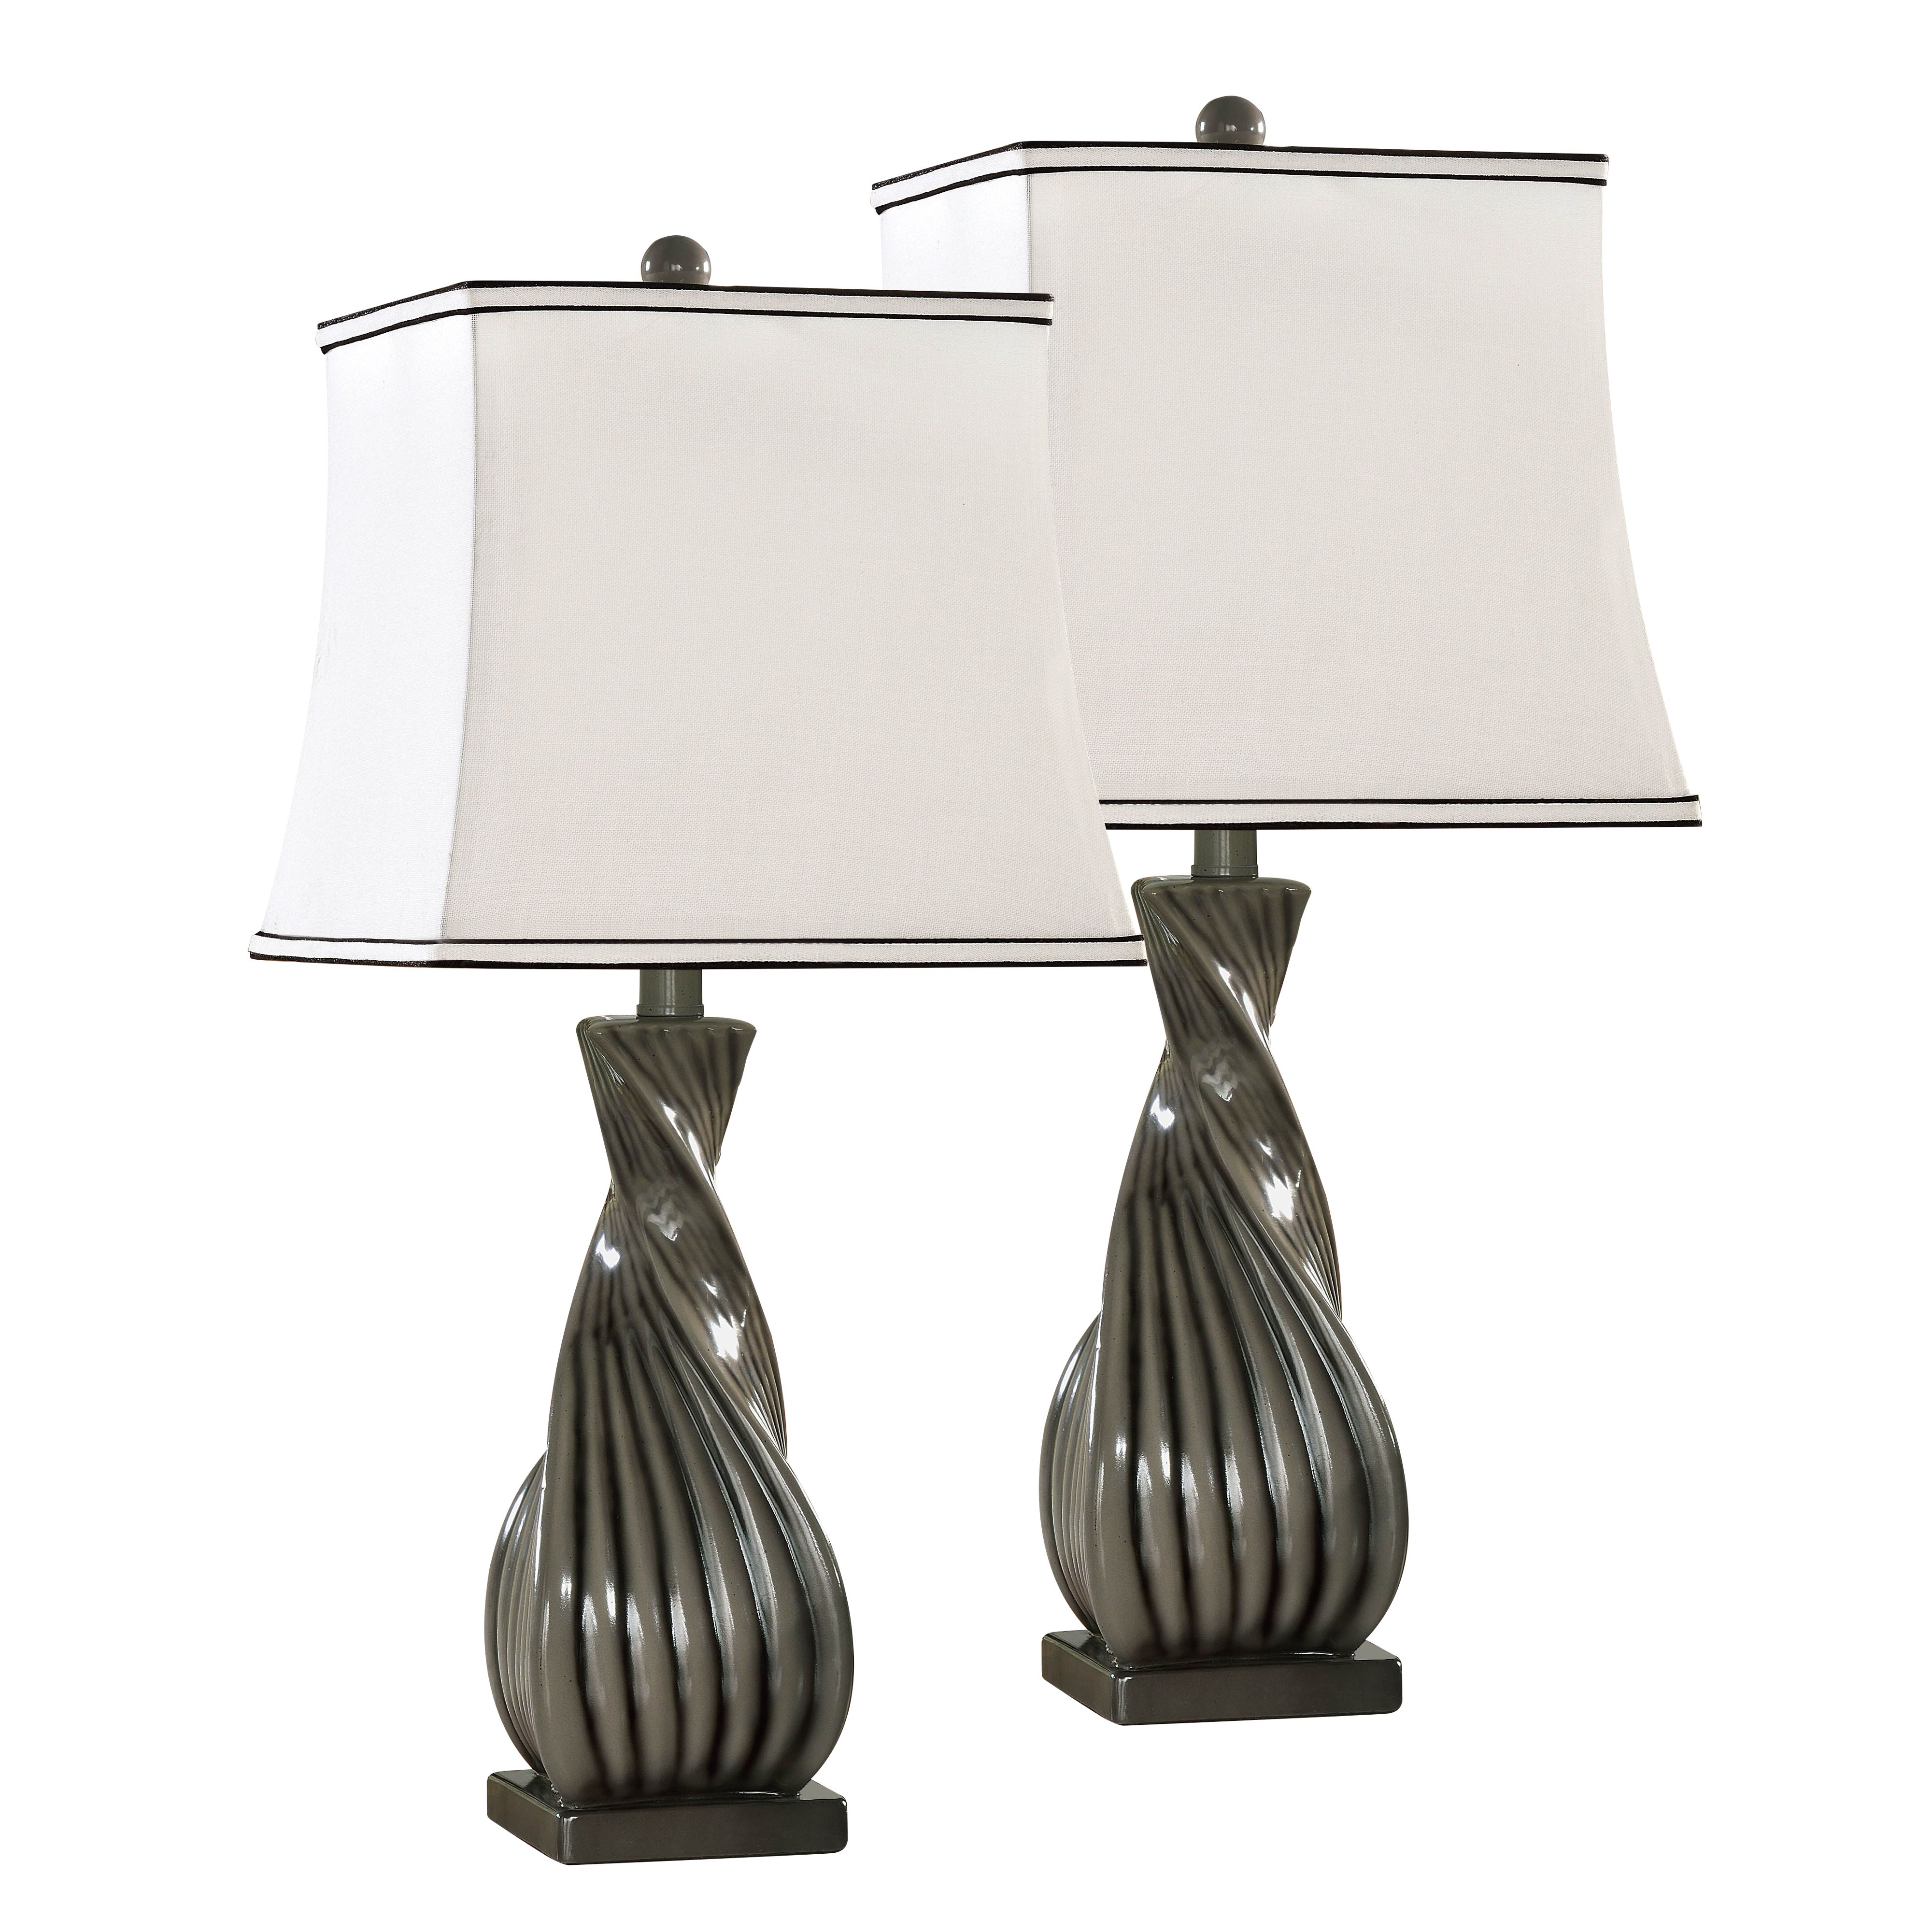 Details About Grain With Fabric Shade Contemporary Table Lamps Set Of 2